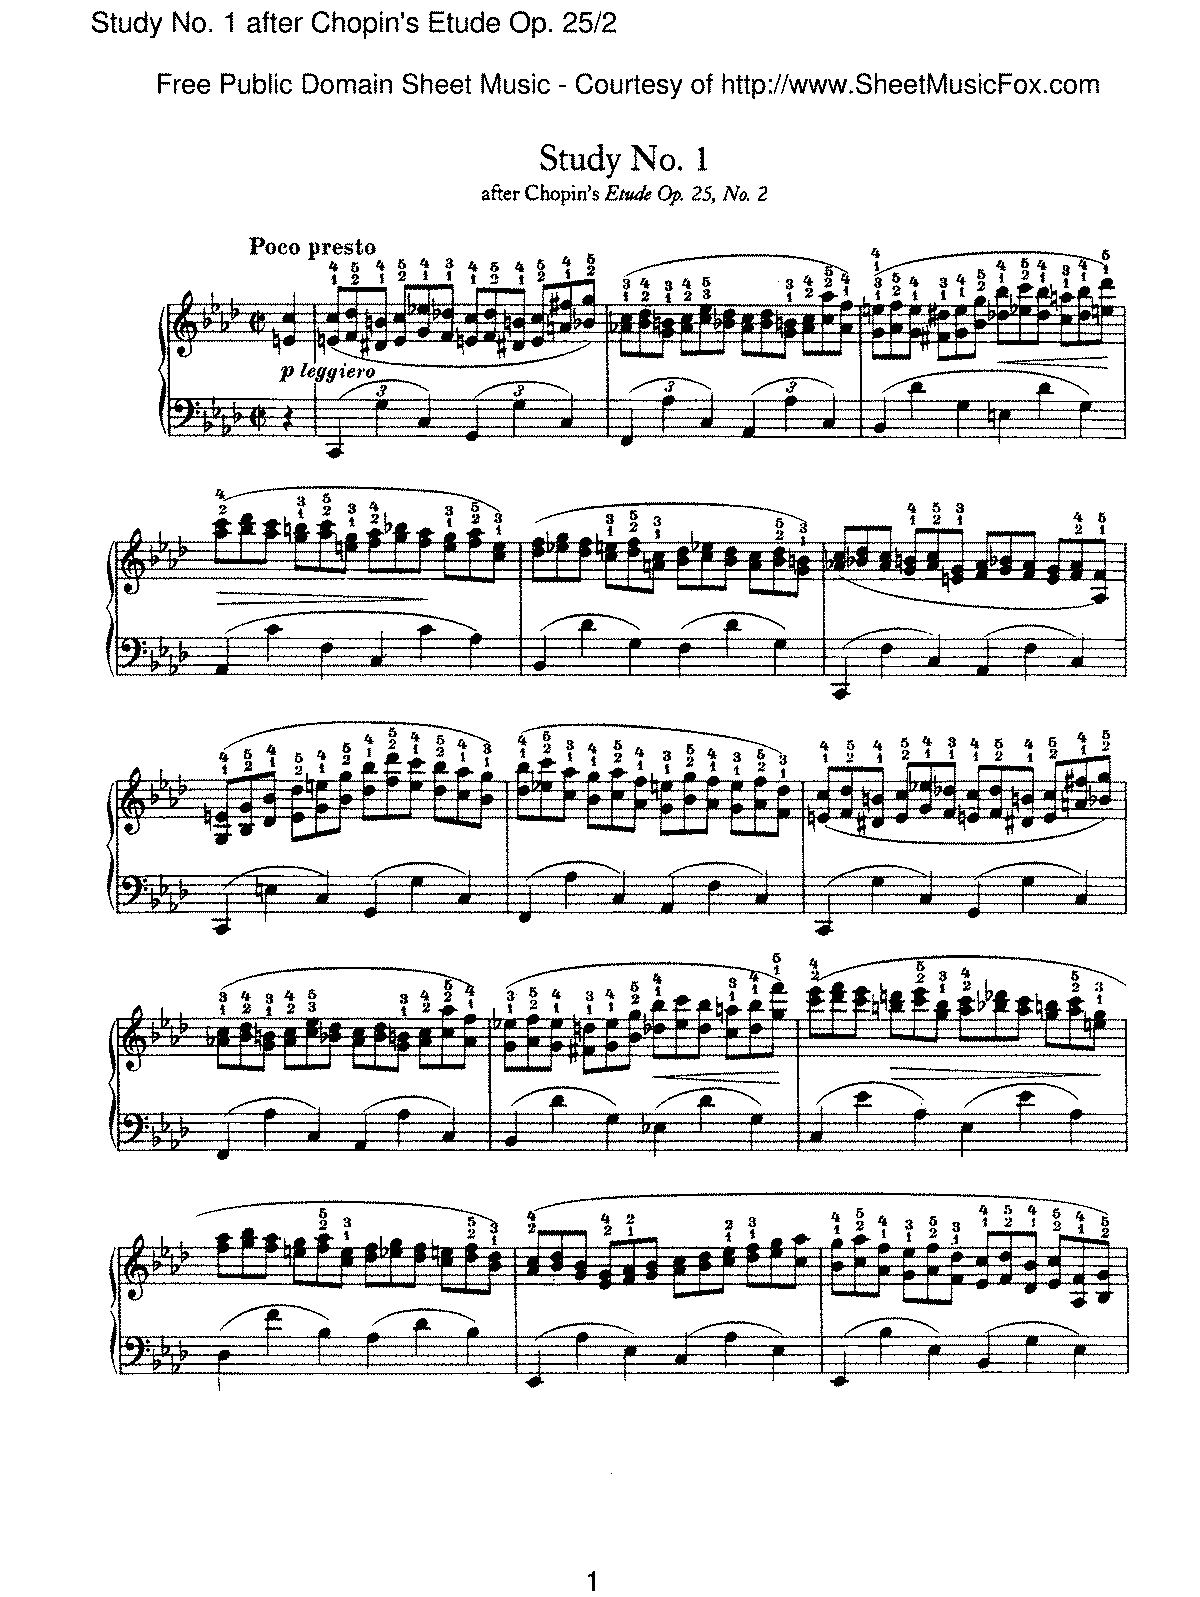 Brahms - Study No.1 After Chopin's Etude Op.25 No.2.pdf